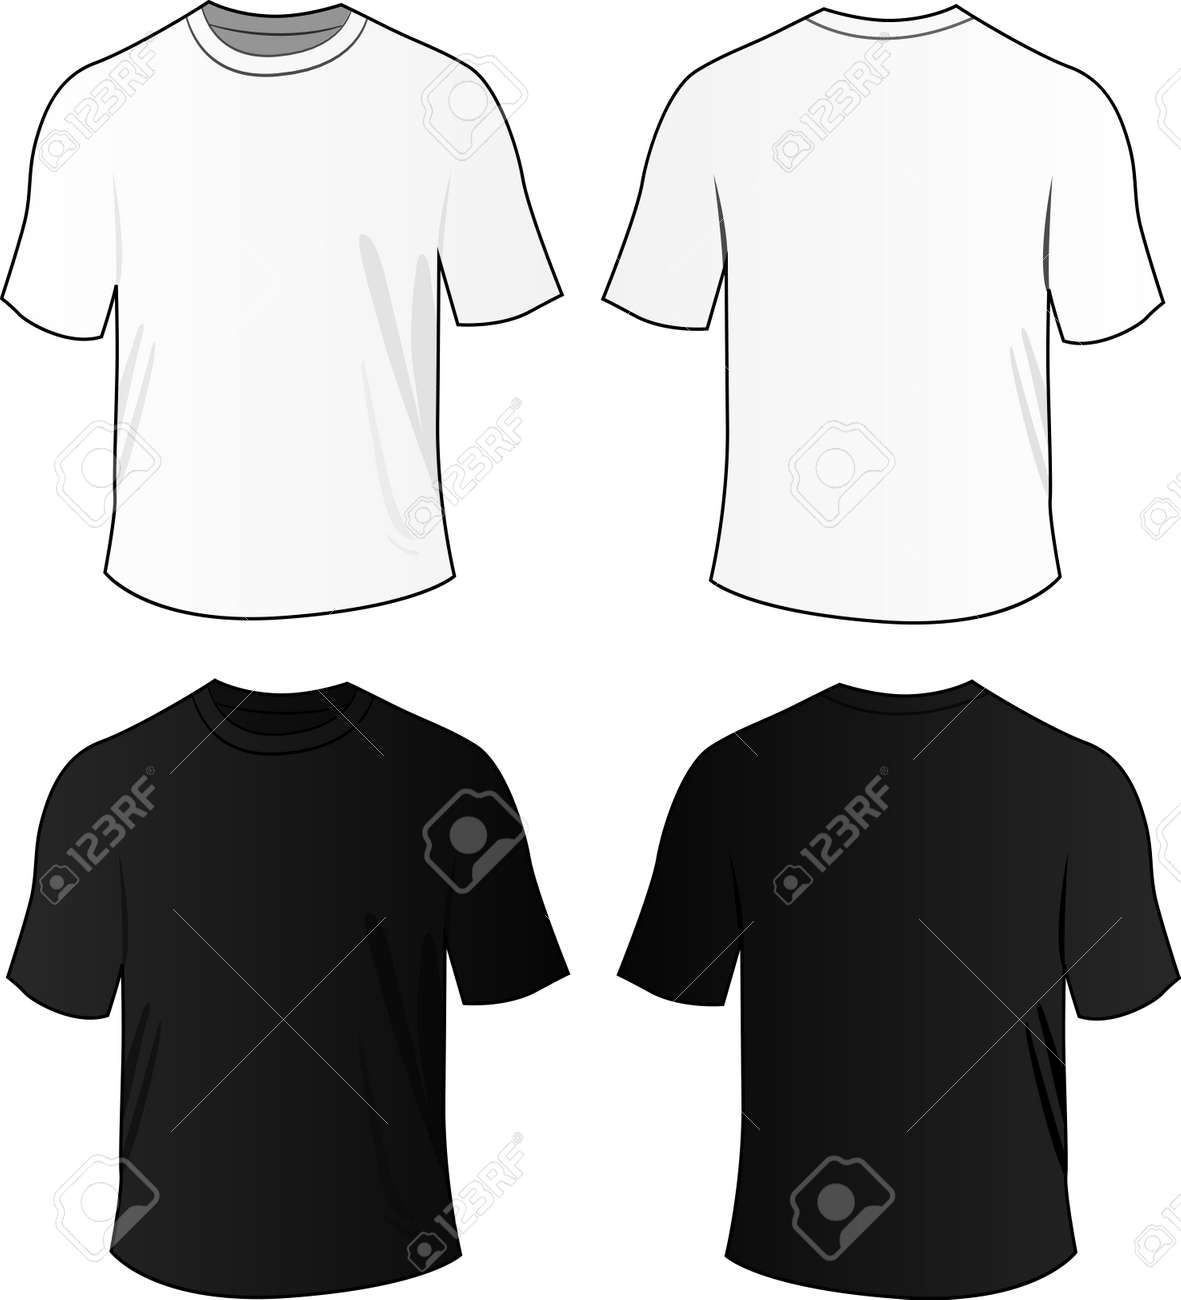 Black t shirt vector free - Tshirt Vector Illustration Of Black And White Blank Tee Shirts